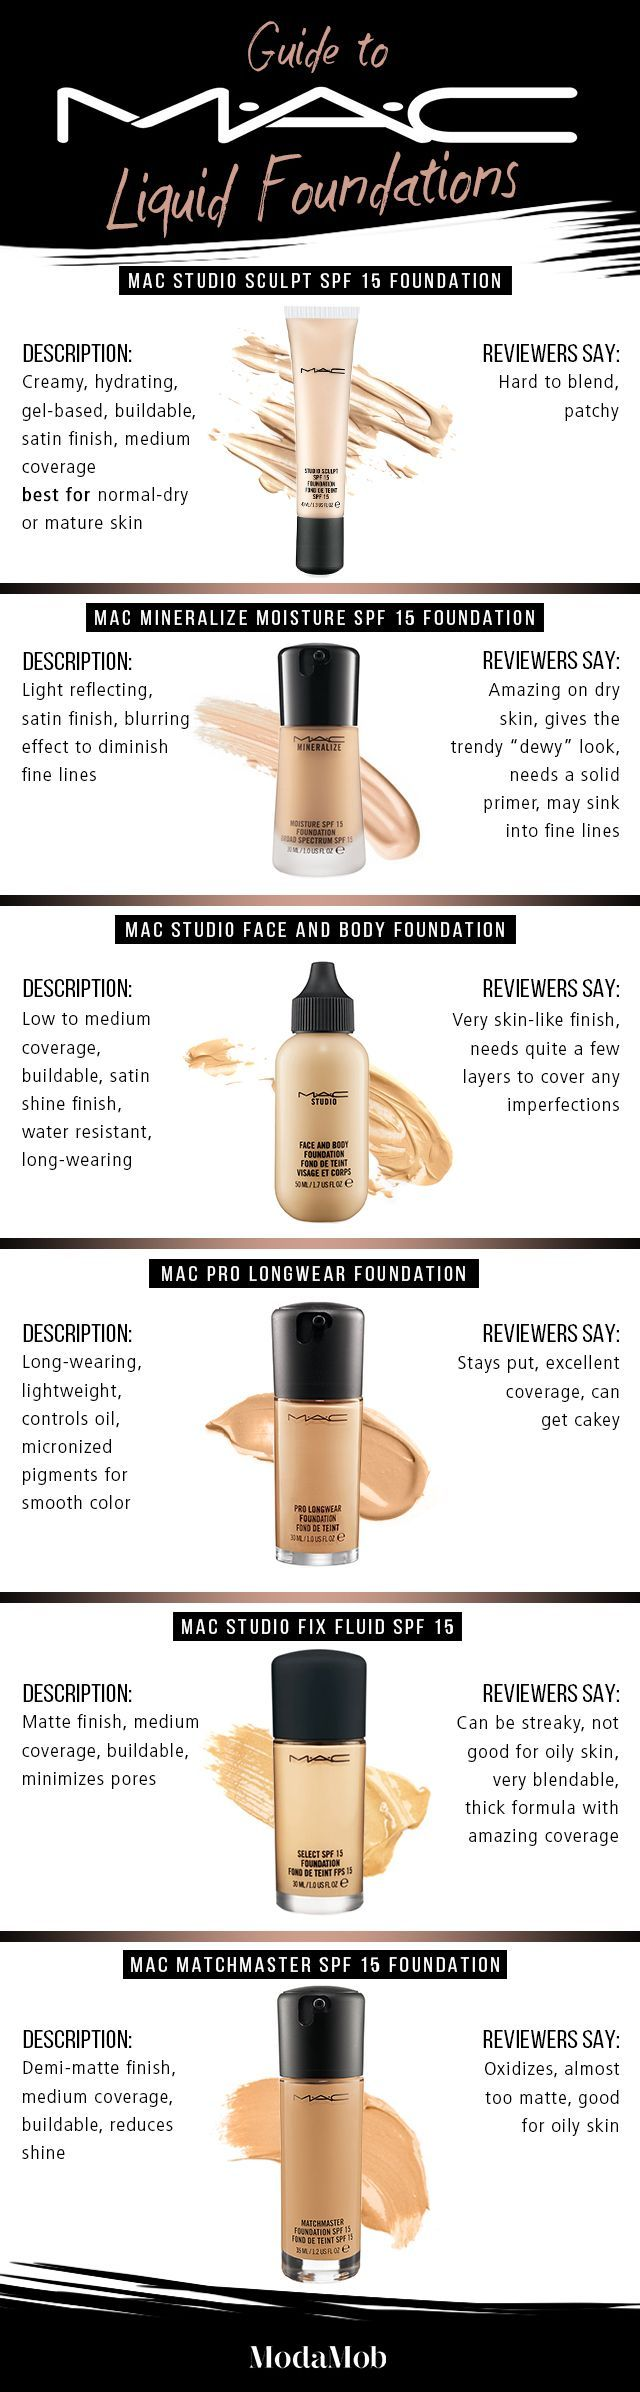 ▪️Mac foundation guide▪️